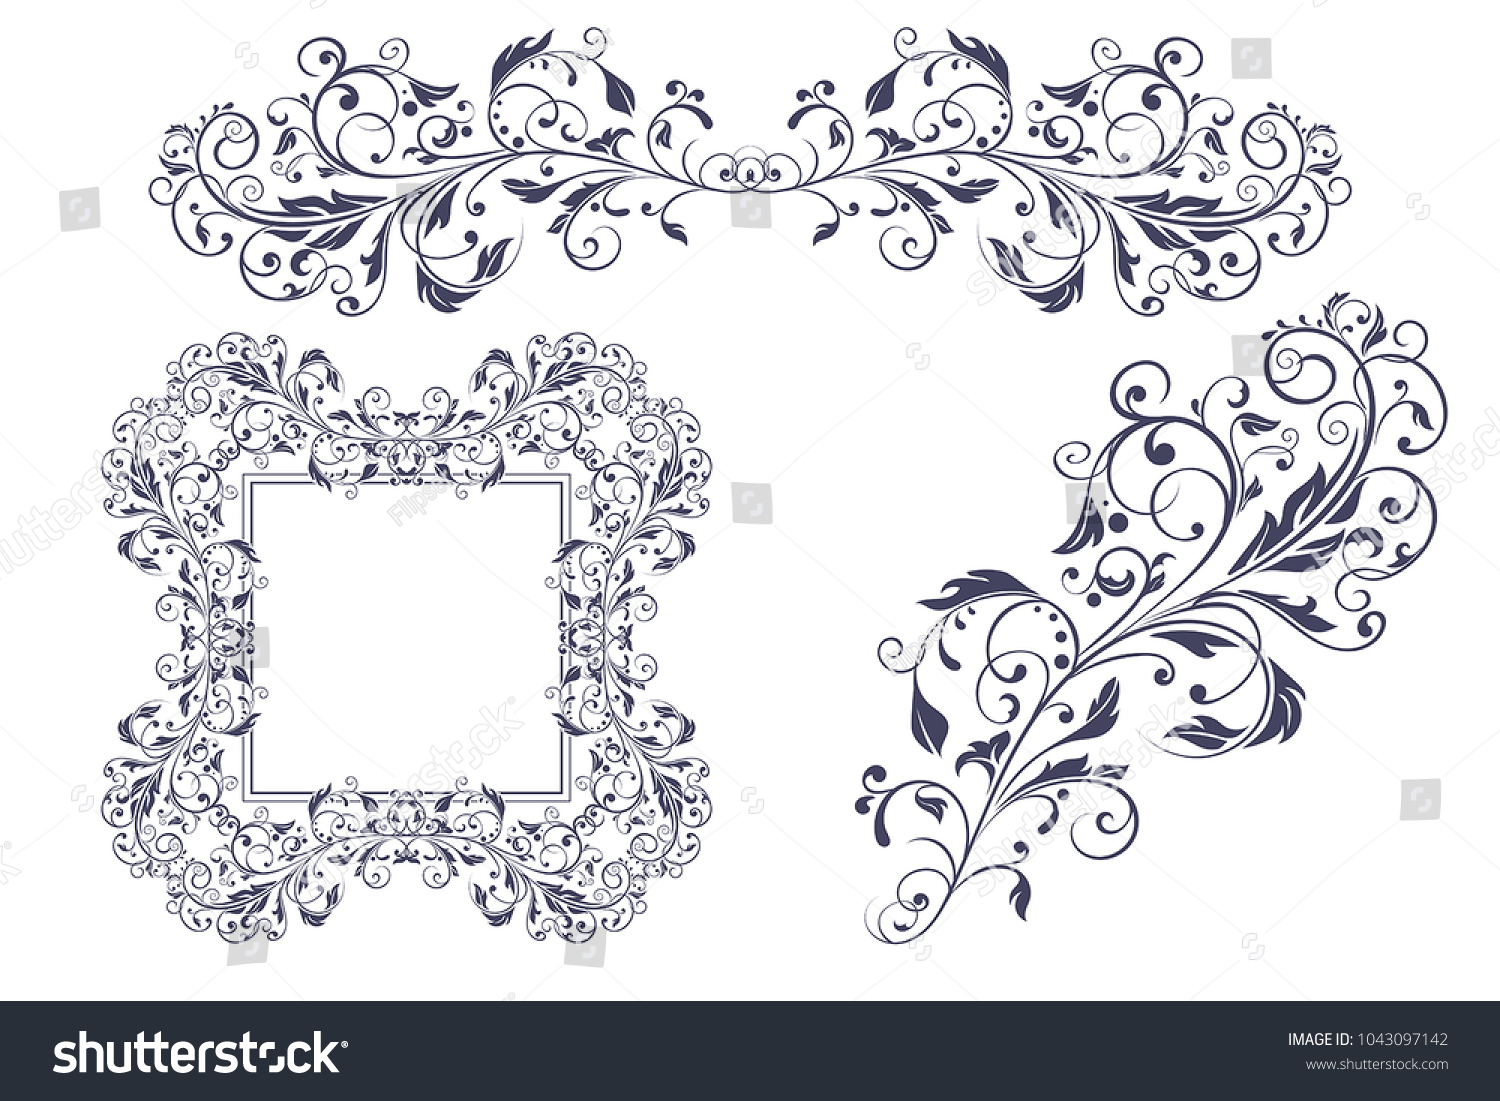 Floral decorative frame ornaments wedding invitation stock vector floral decorative frame and ornaments wedding invitation decoration vector illustration isolated on white background stopboris Gallery